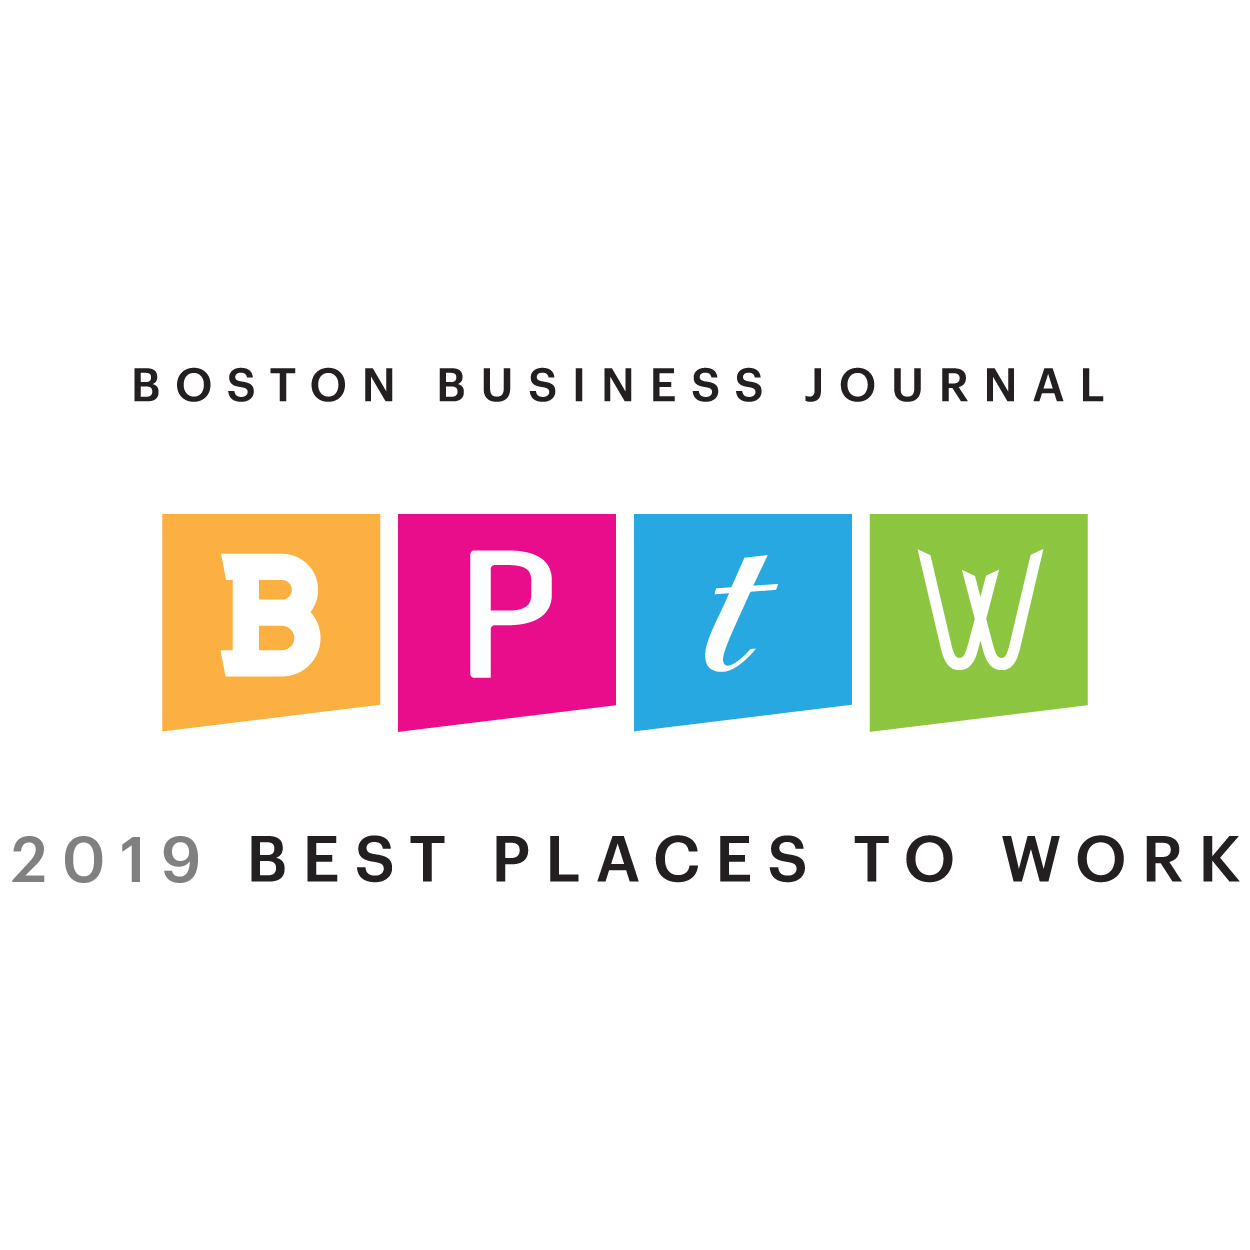 2019 Boston Business Journal's Best Places to Work